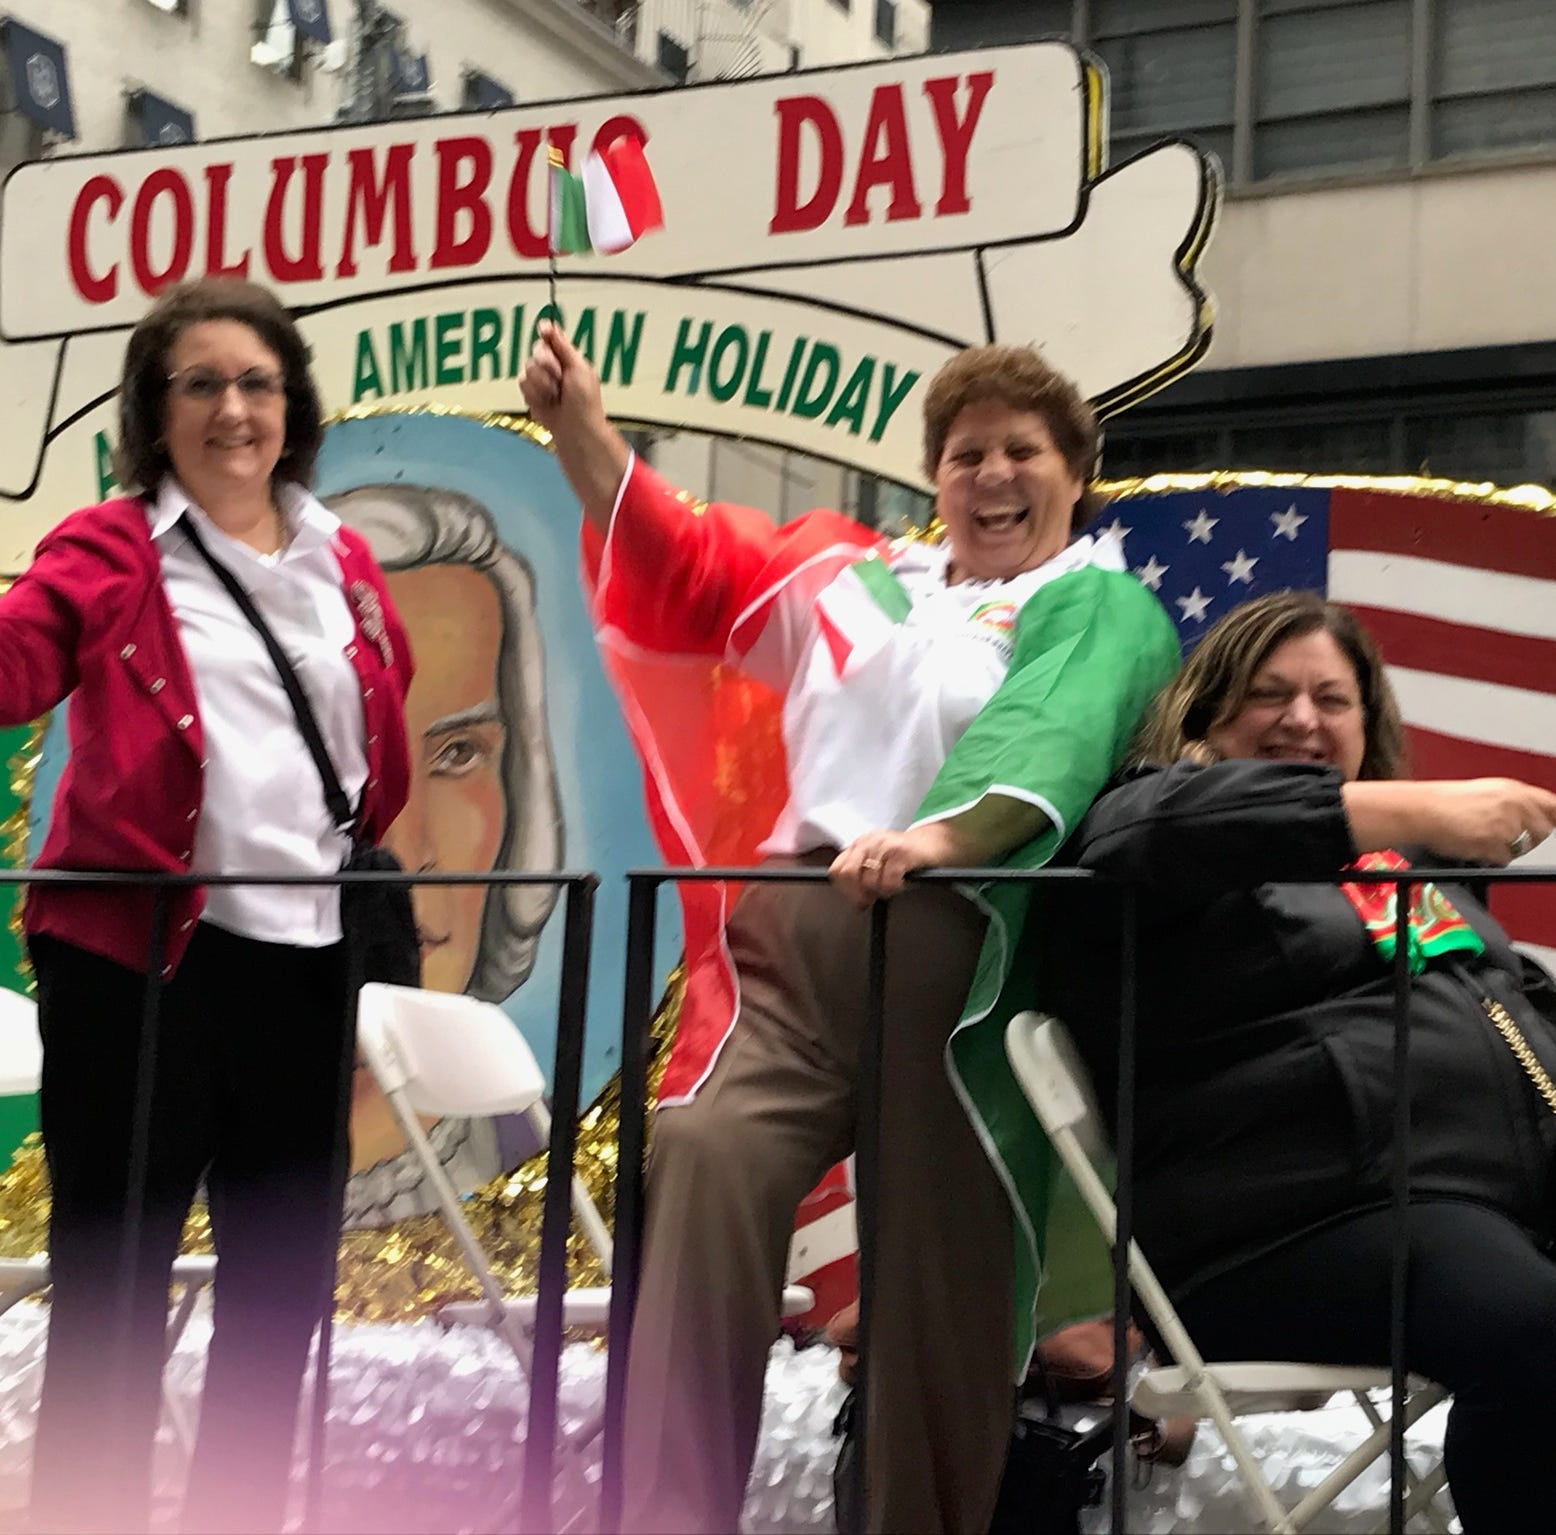 Glen Rock debating turning Columbus Day into Indigenous Peoples' Day